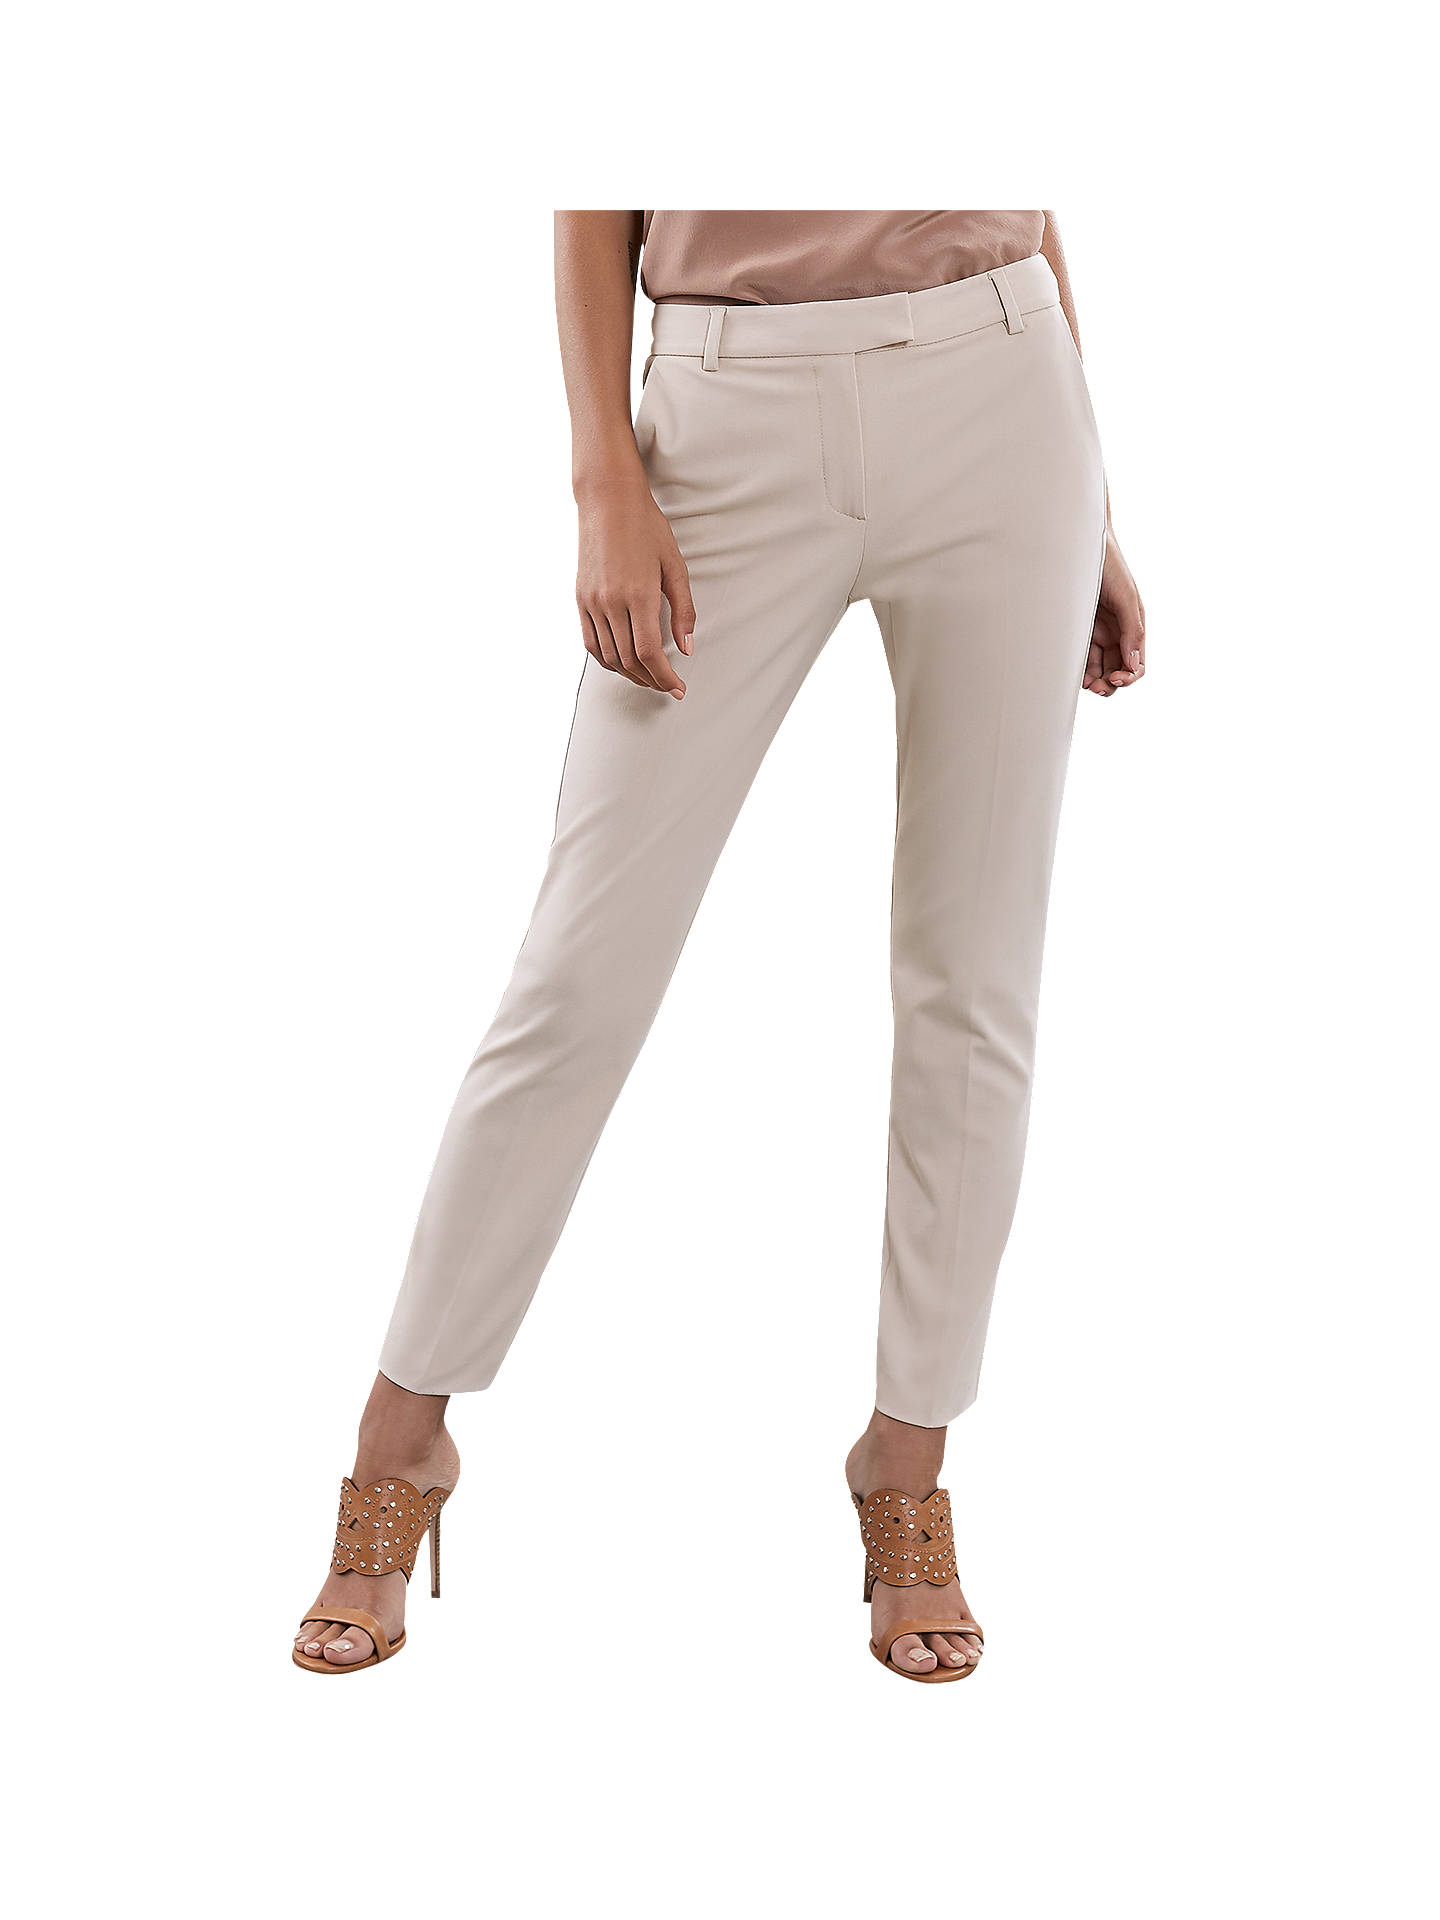 Buy Reiss Joanna Casual Trousers, Cream, 6 Online at johnlewis.com